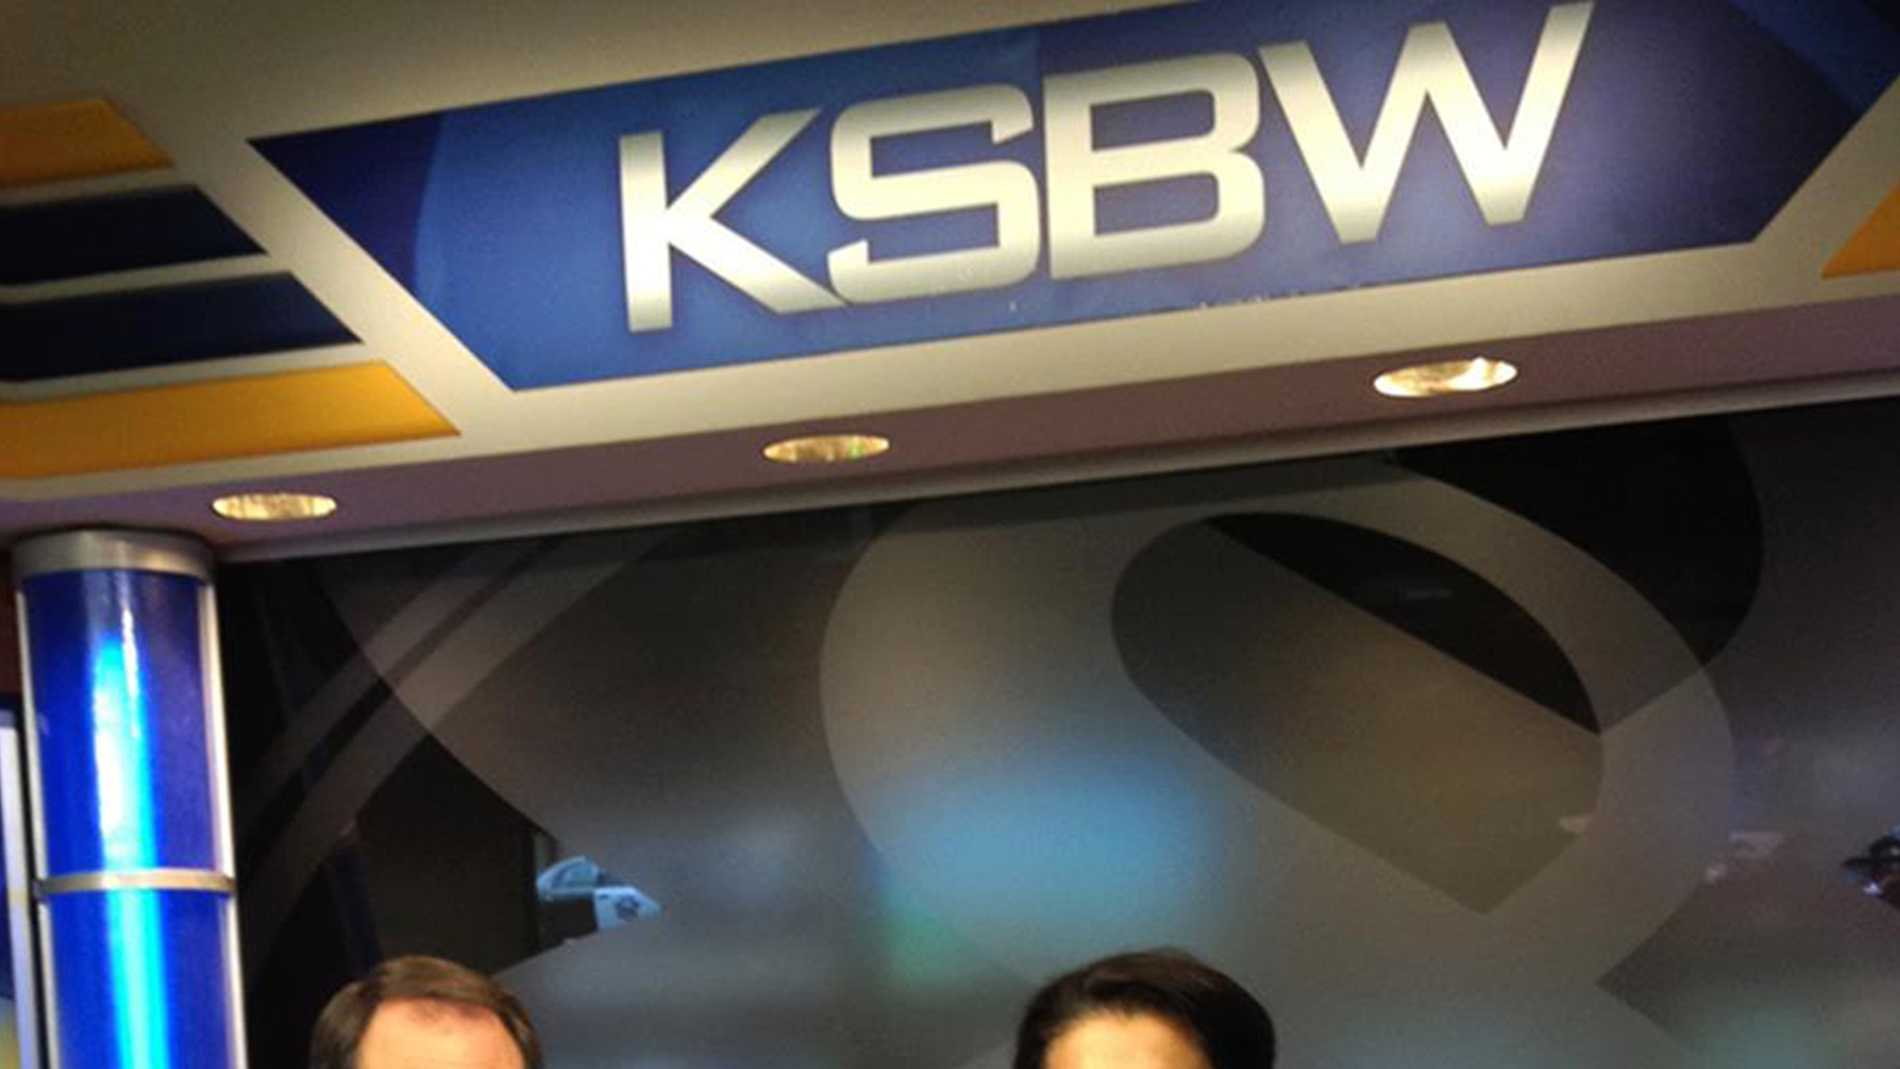 Dina Eastwood guest anchored with Dan Green for KSBW's newscast in November.